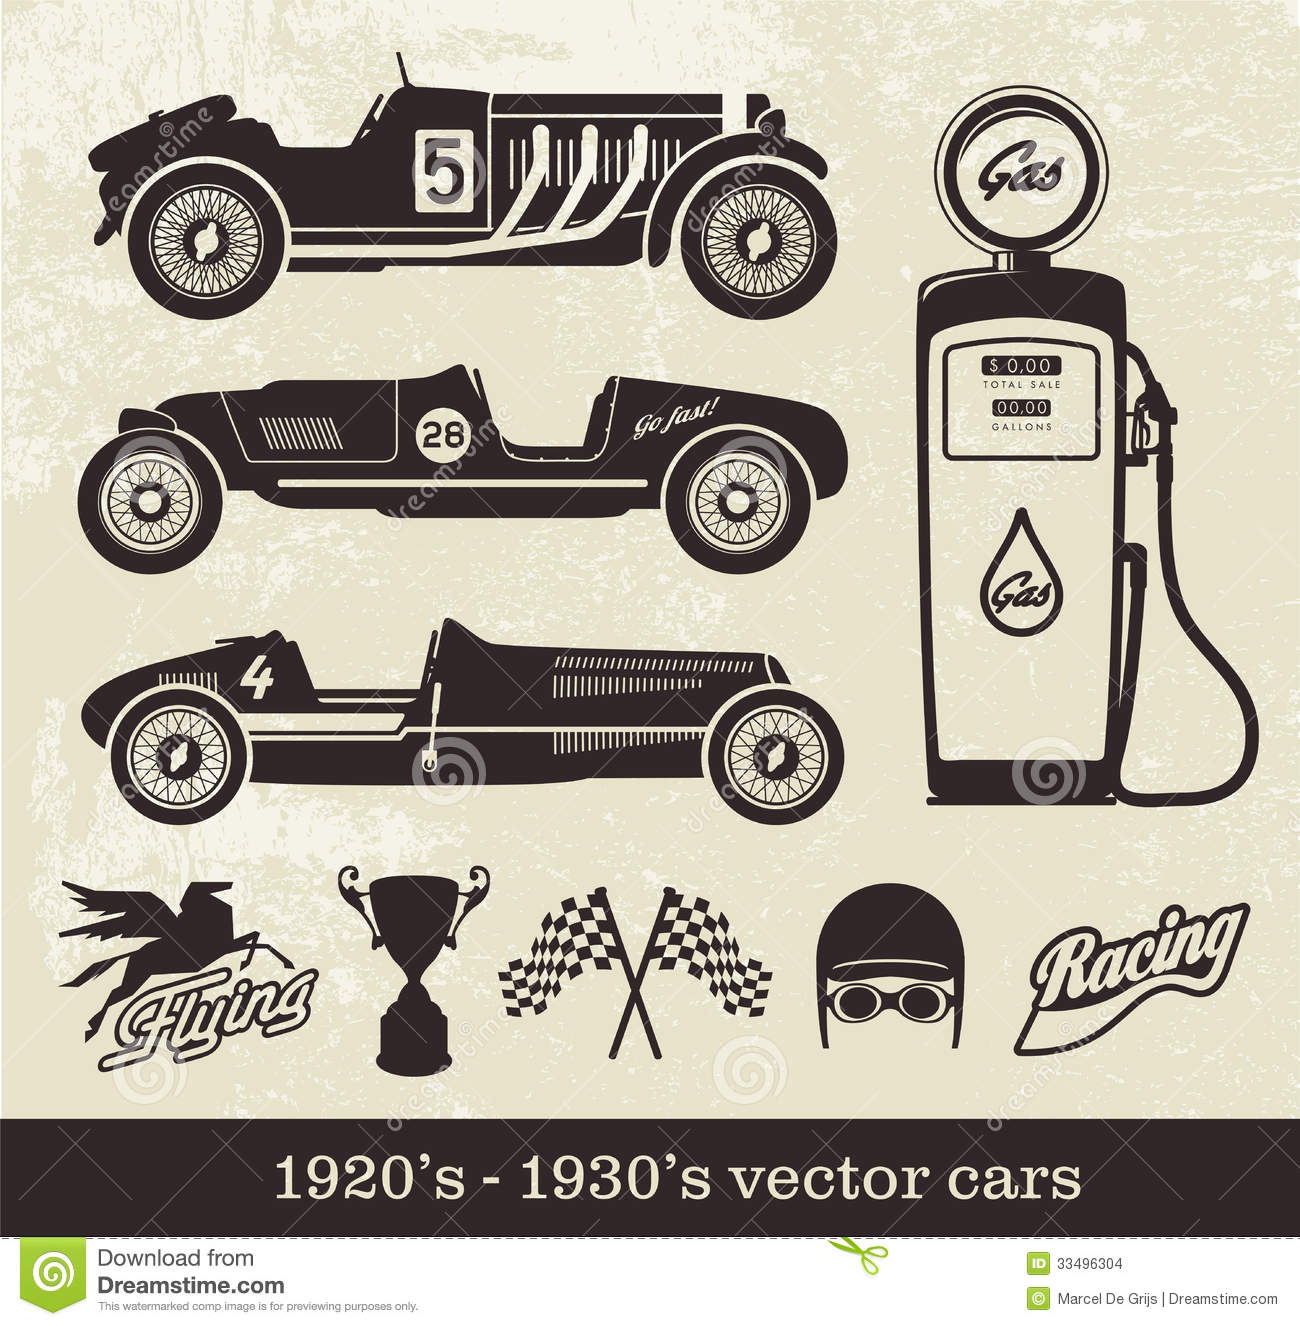 Vector vintage style cars stock vector. Illustration of fuel - 33496304